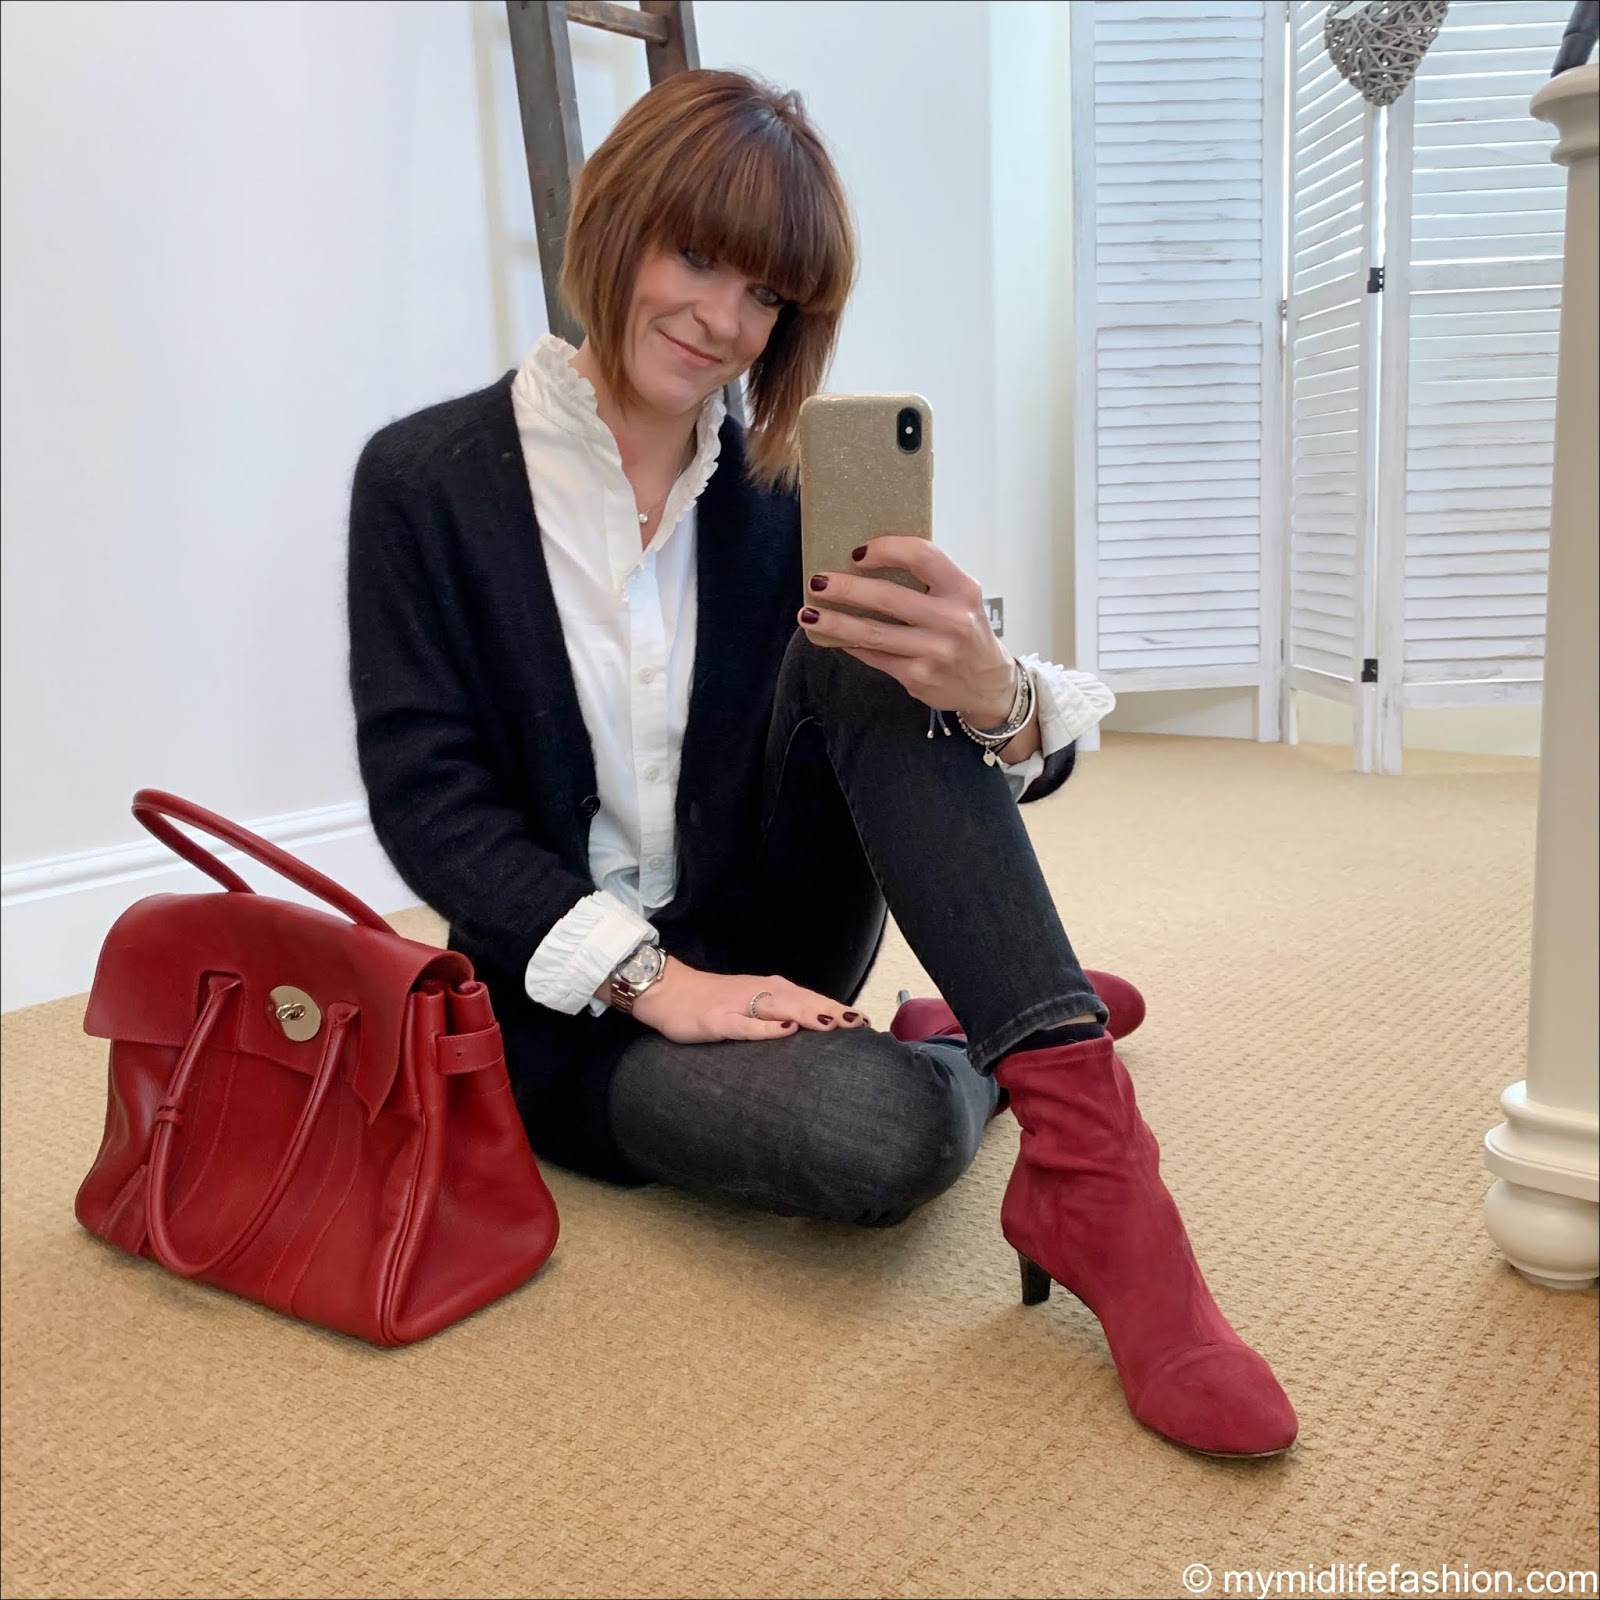 my midlife fashion, isabel marant etoile mohair cardigan, uniqlo high collar frill blouse, j crew 9 high rise toothpick jean in charcoal wash,mulberry bayswater bag, isabel marant goat suede sock ankle boots